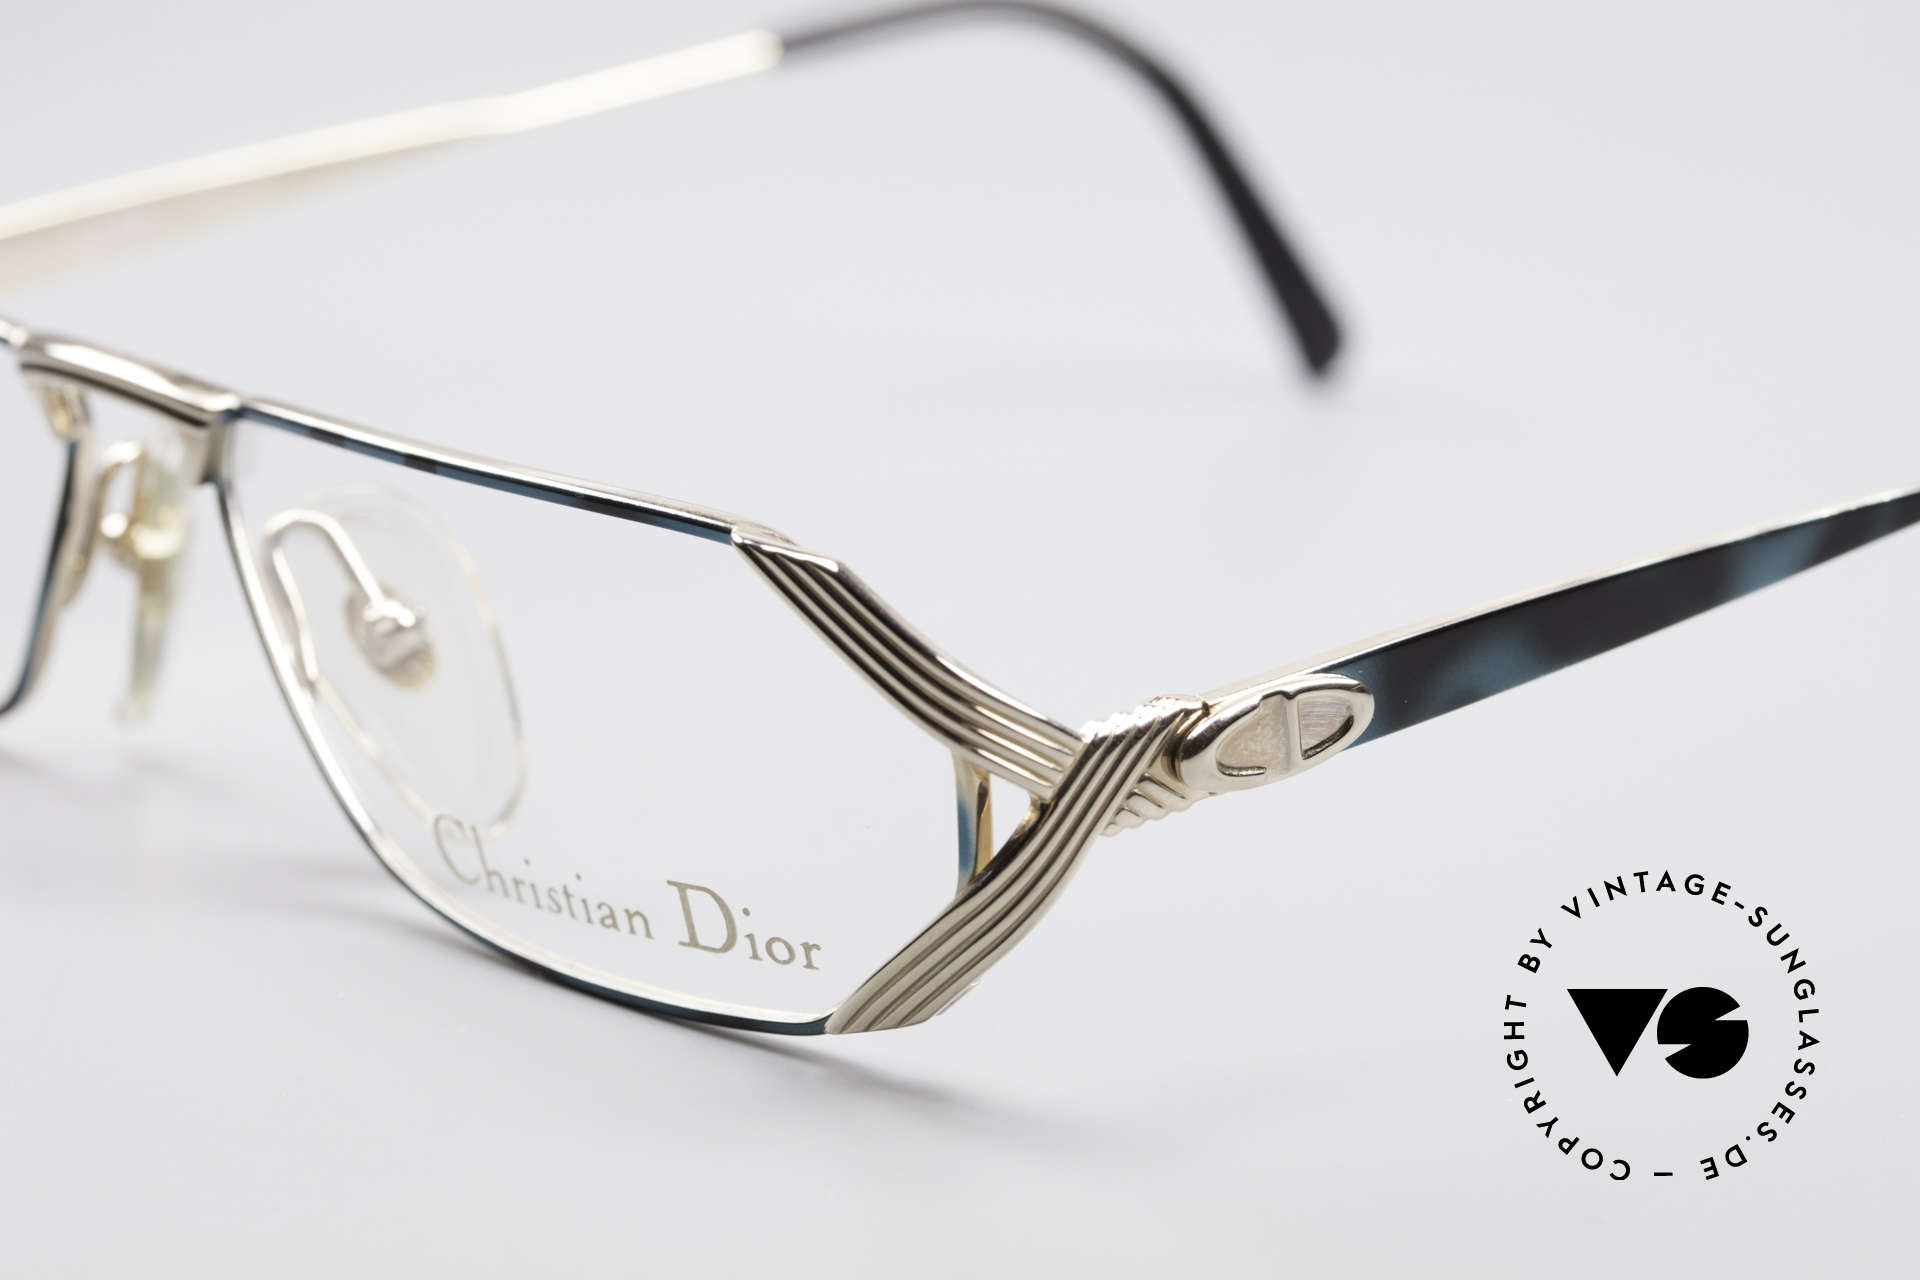 Christian Dior 2617 Vintage Reading Glasses, utterly top-notch craftsmanship - U must feel this!, Made for Men